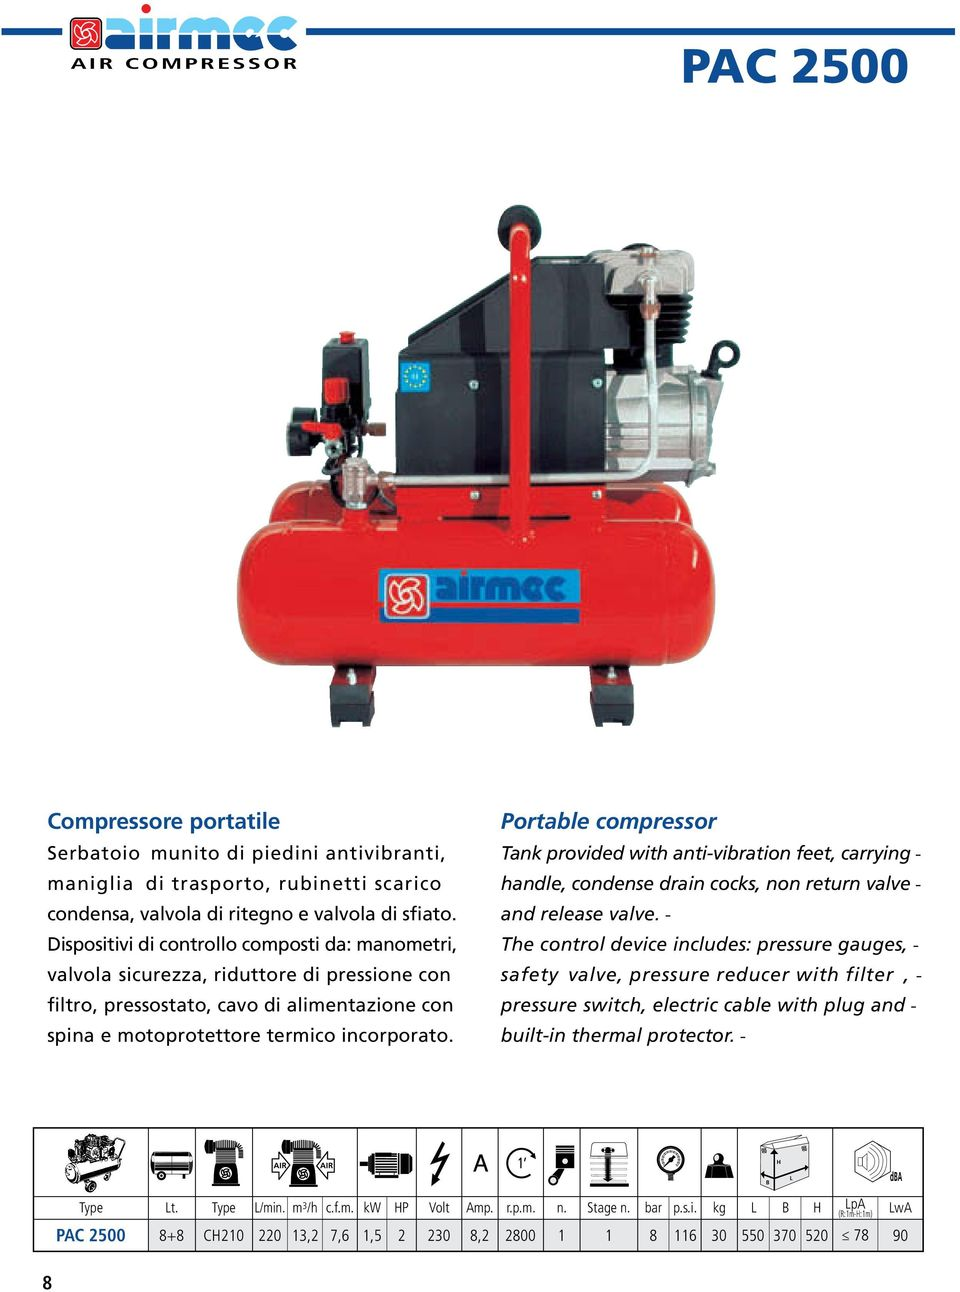 Portable compressor Tank provided with anti-vibration feet, carryinghandle, condense drain cocks, non return valveand release valve.